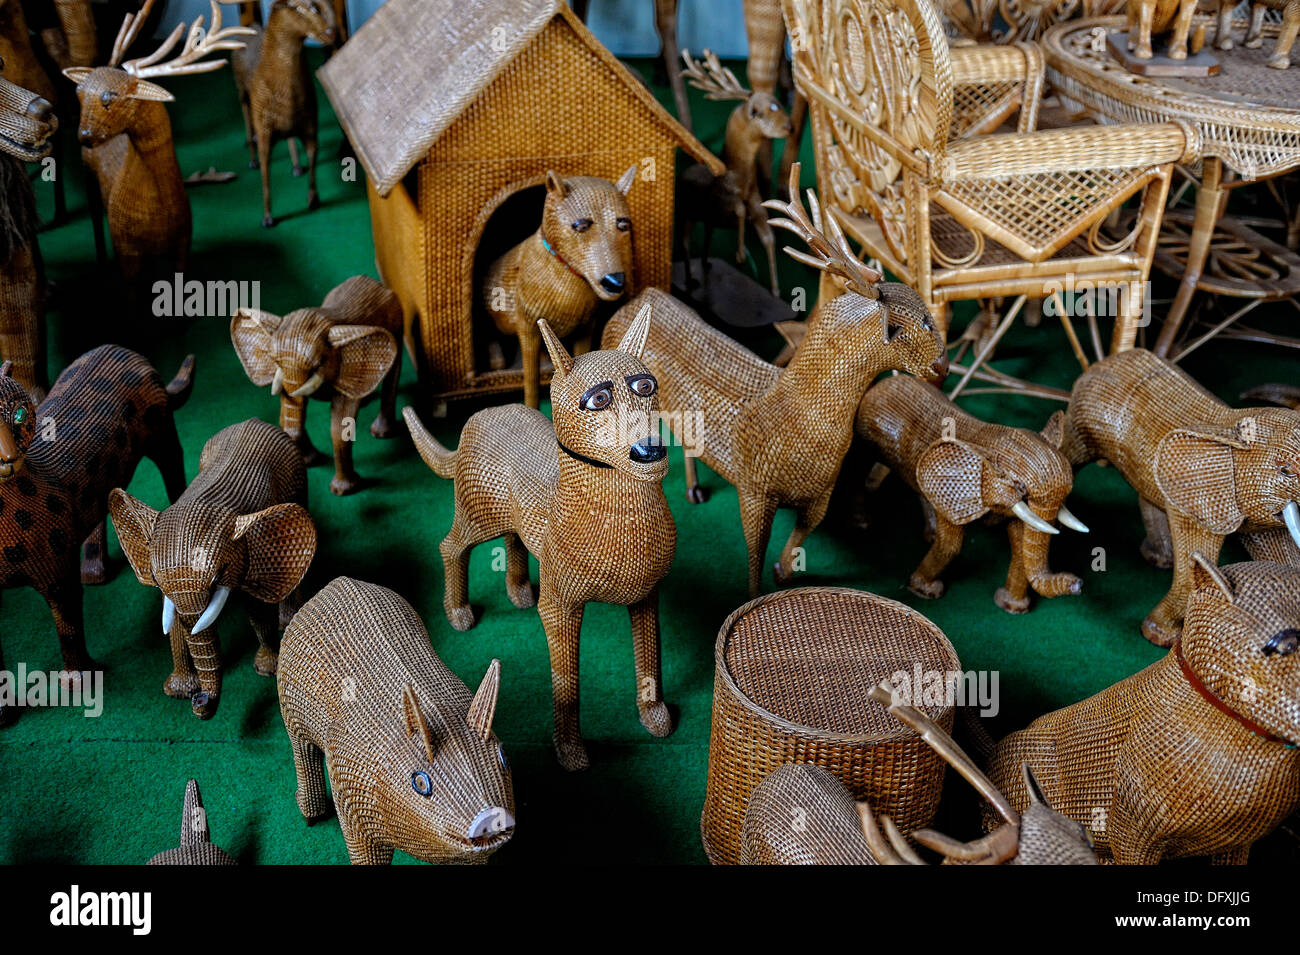 Animal wicker work on display in Camacha Madeira focus is centre on dogs head - Stock Image